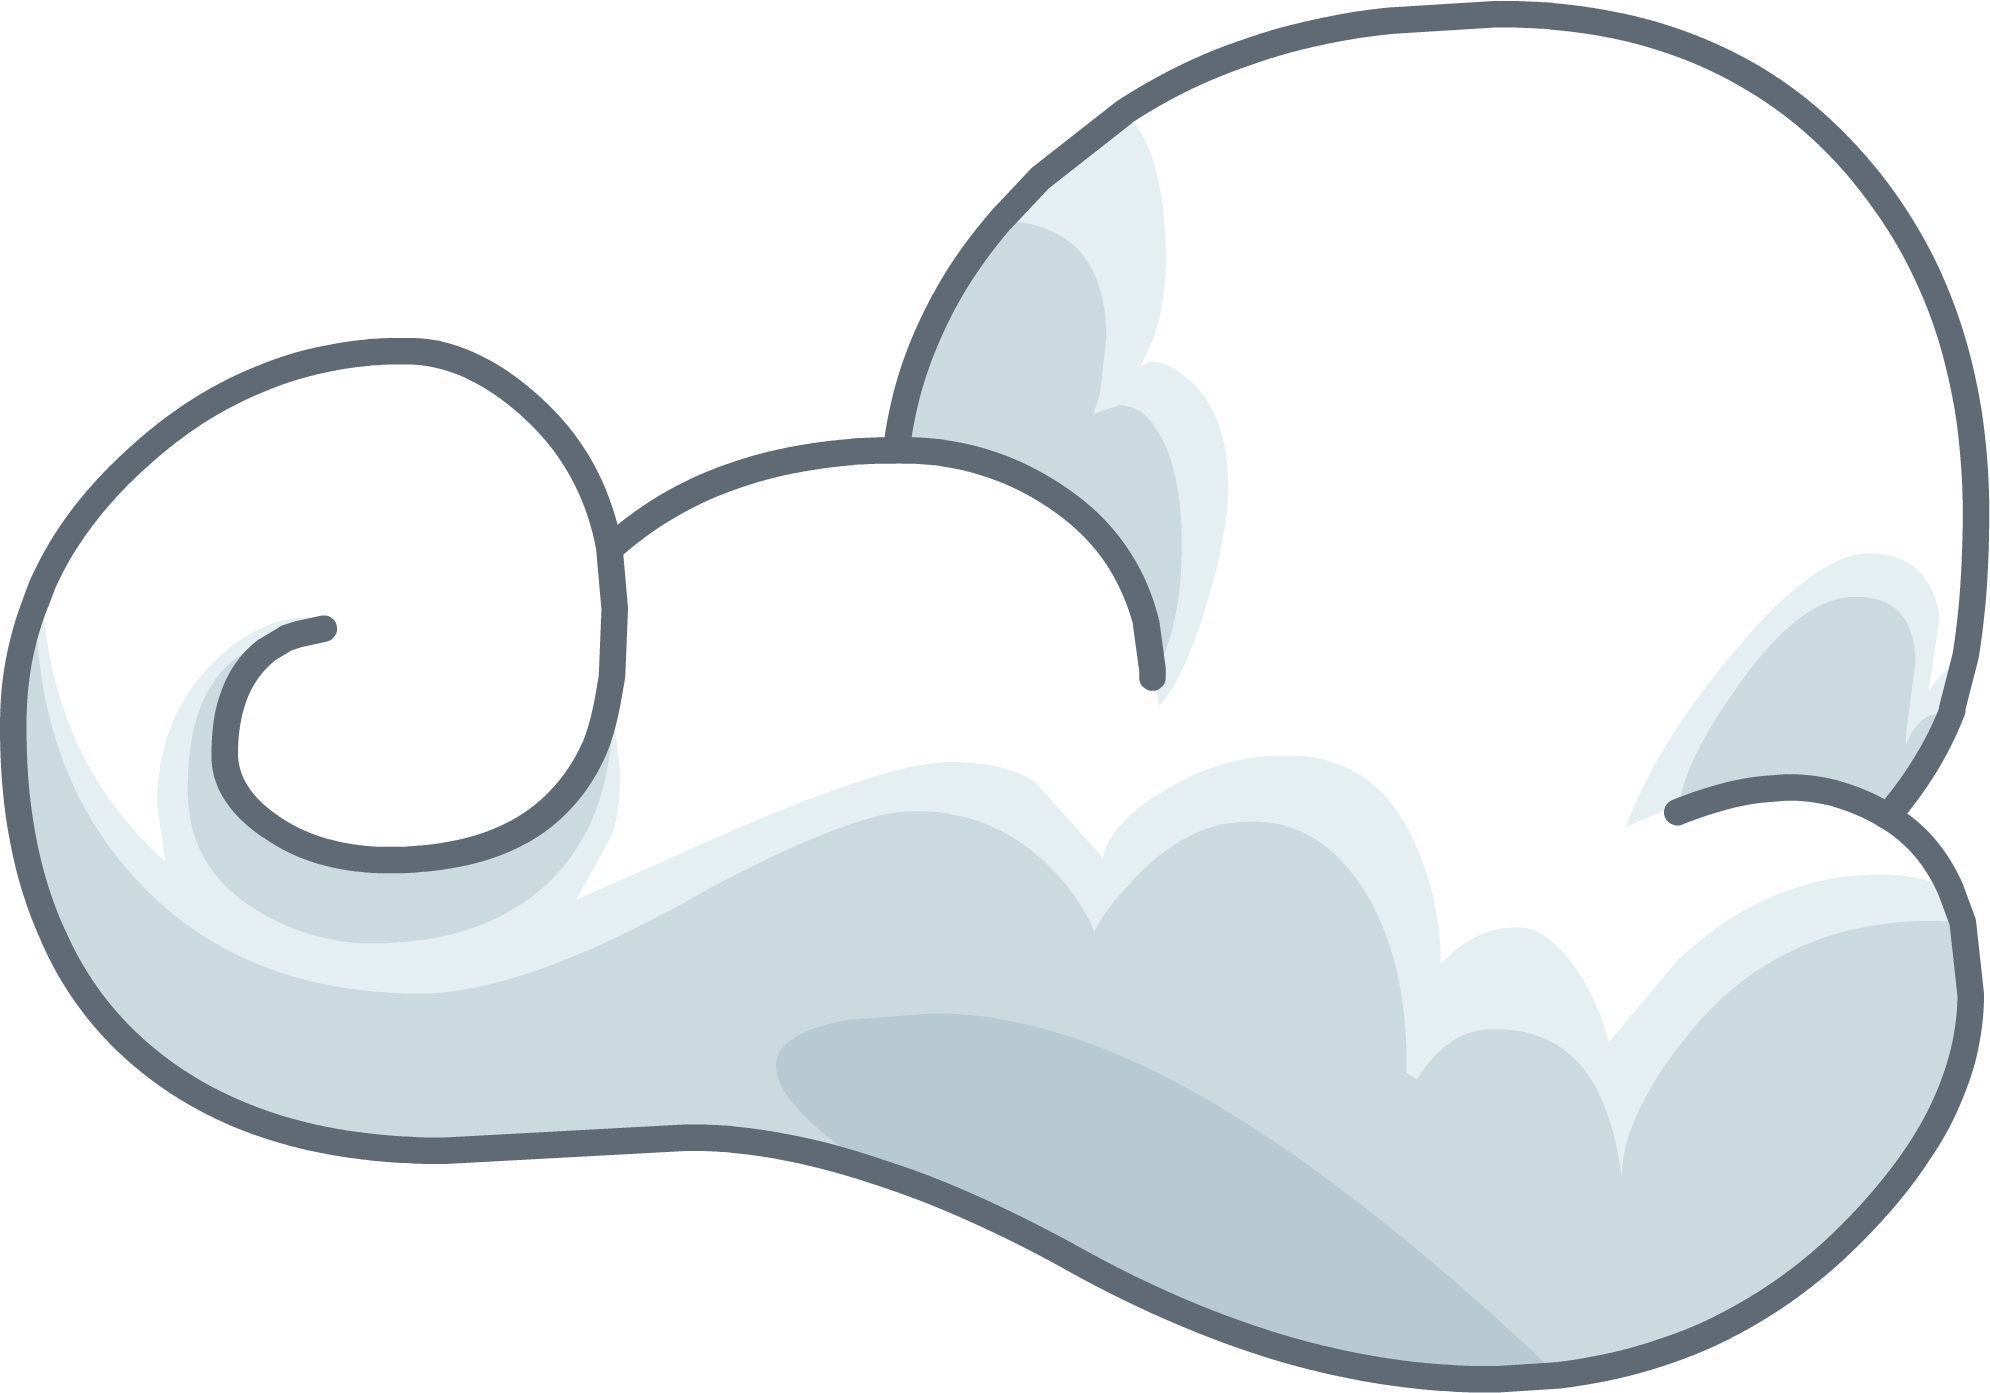 Wispy clouds png. Image icon club penguin